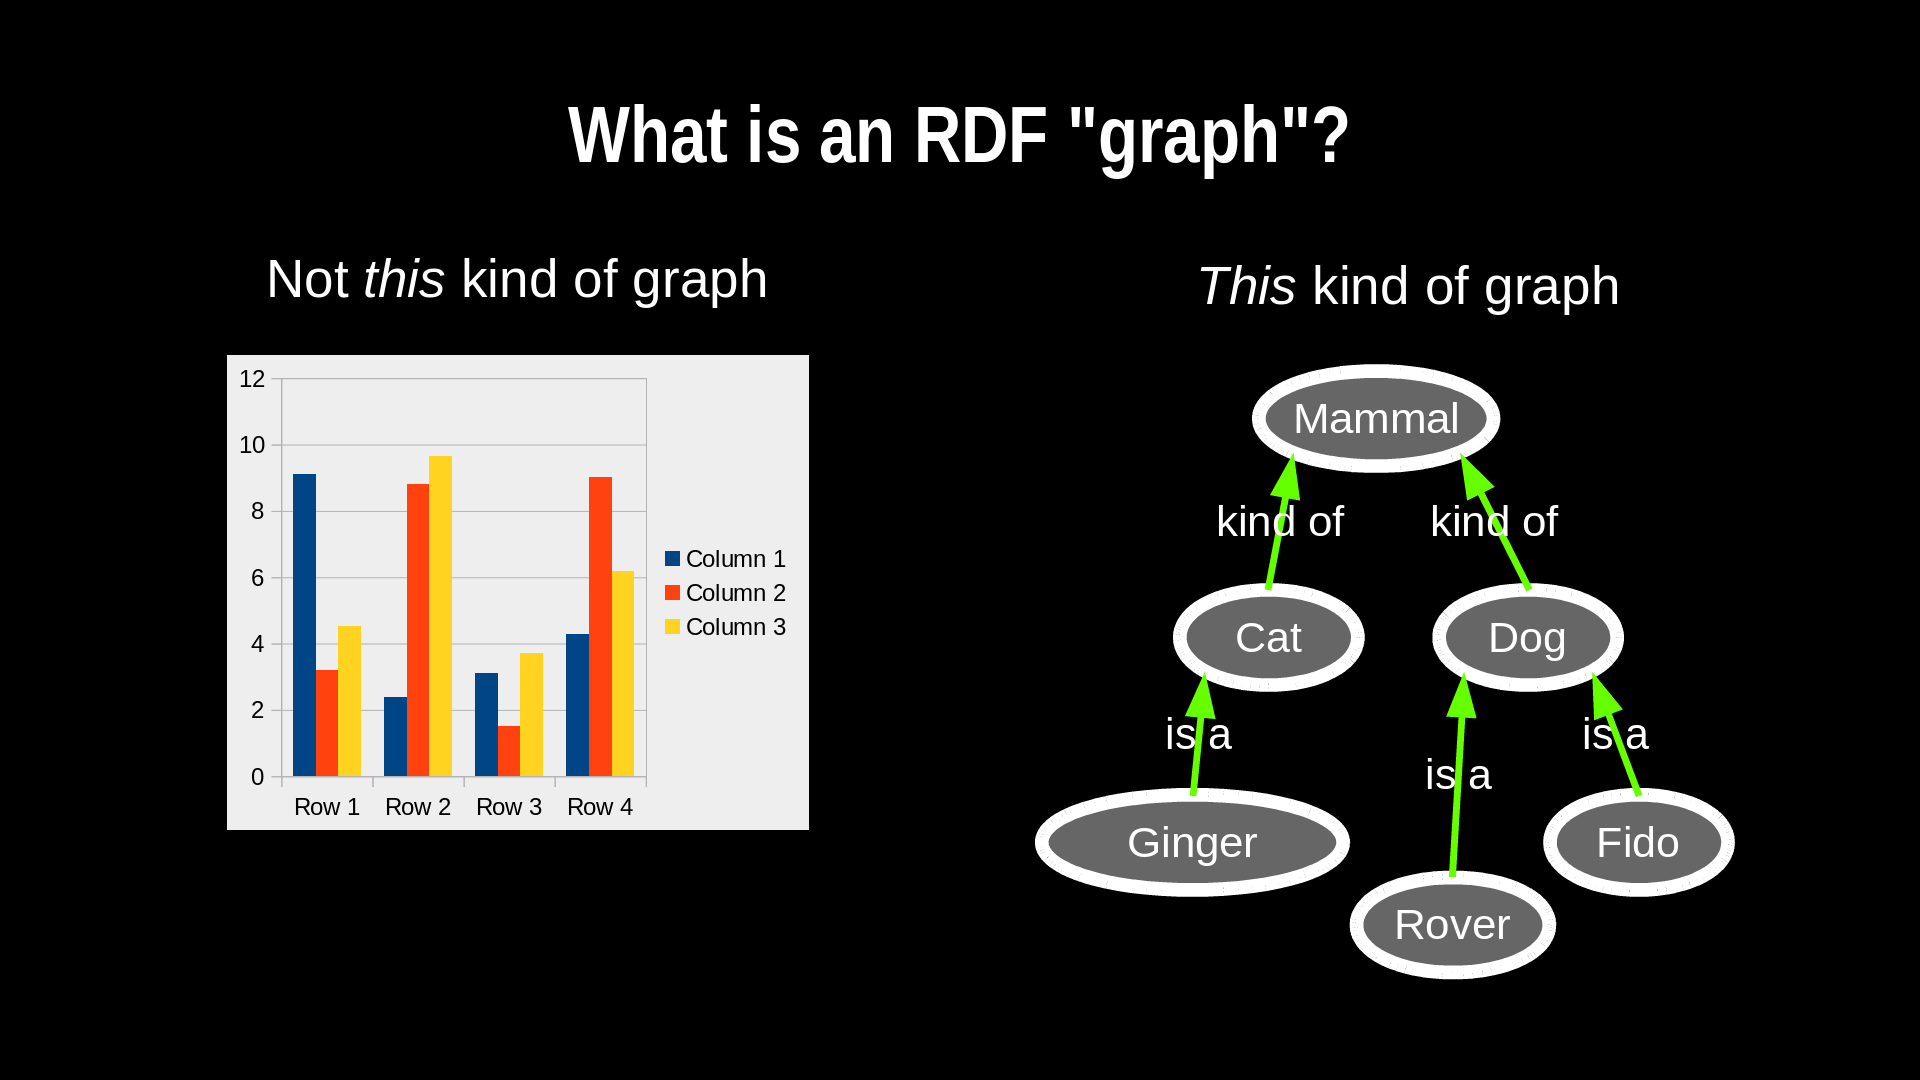 What is an RDF graph?